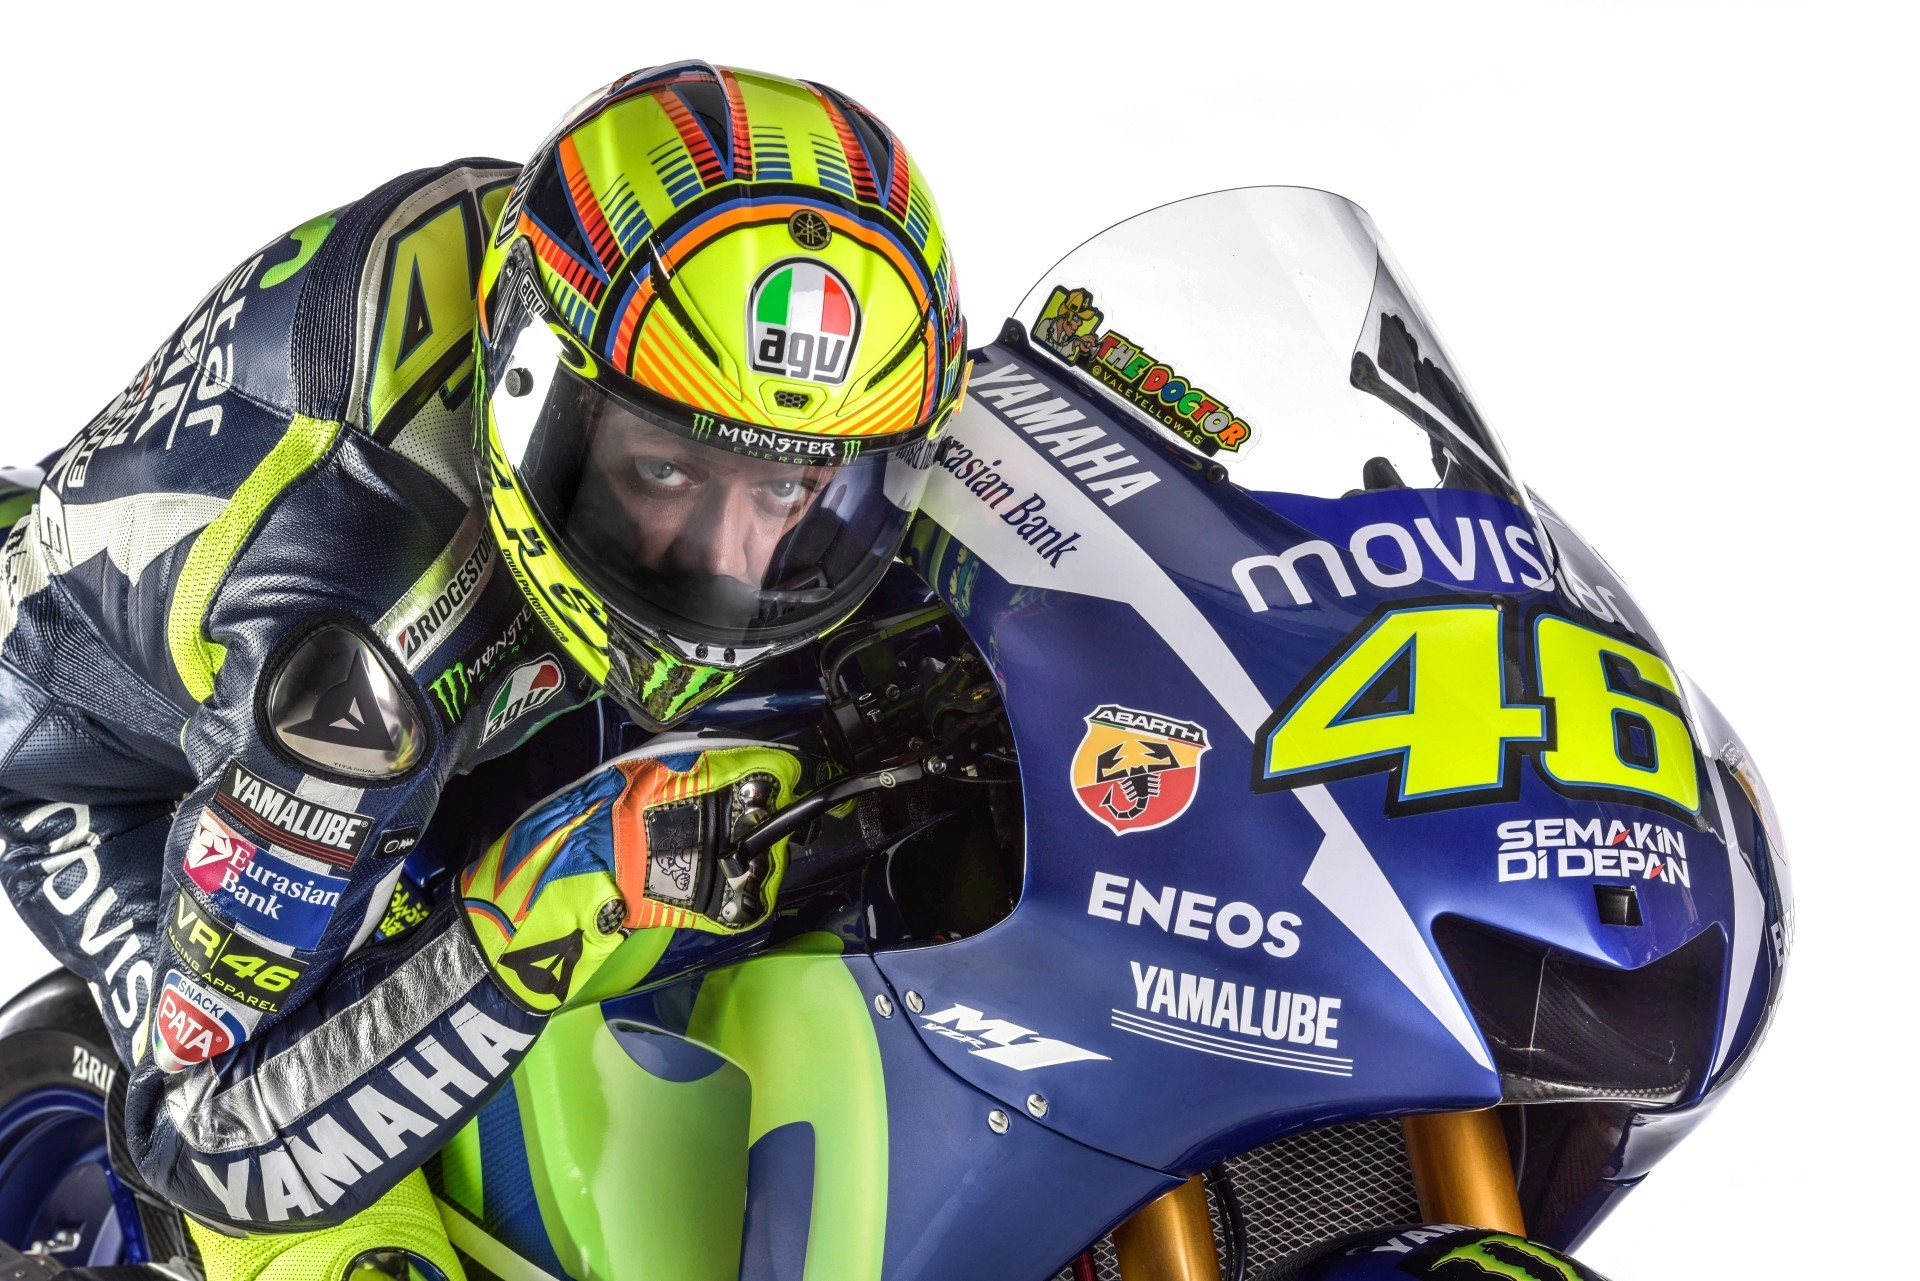 Vr46 Wallpaper Hd Valentino Rossi Says He Will Never Race In World Superbike